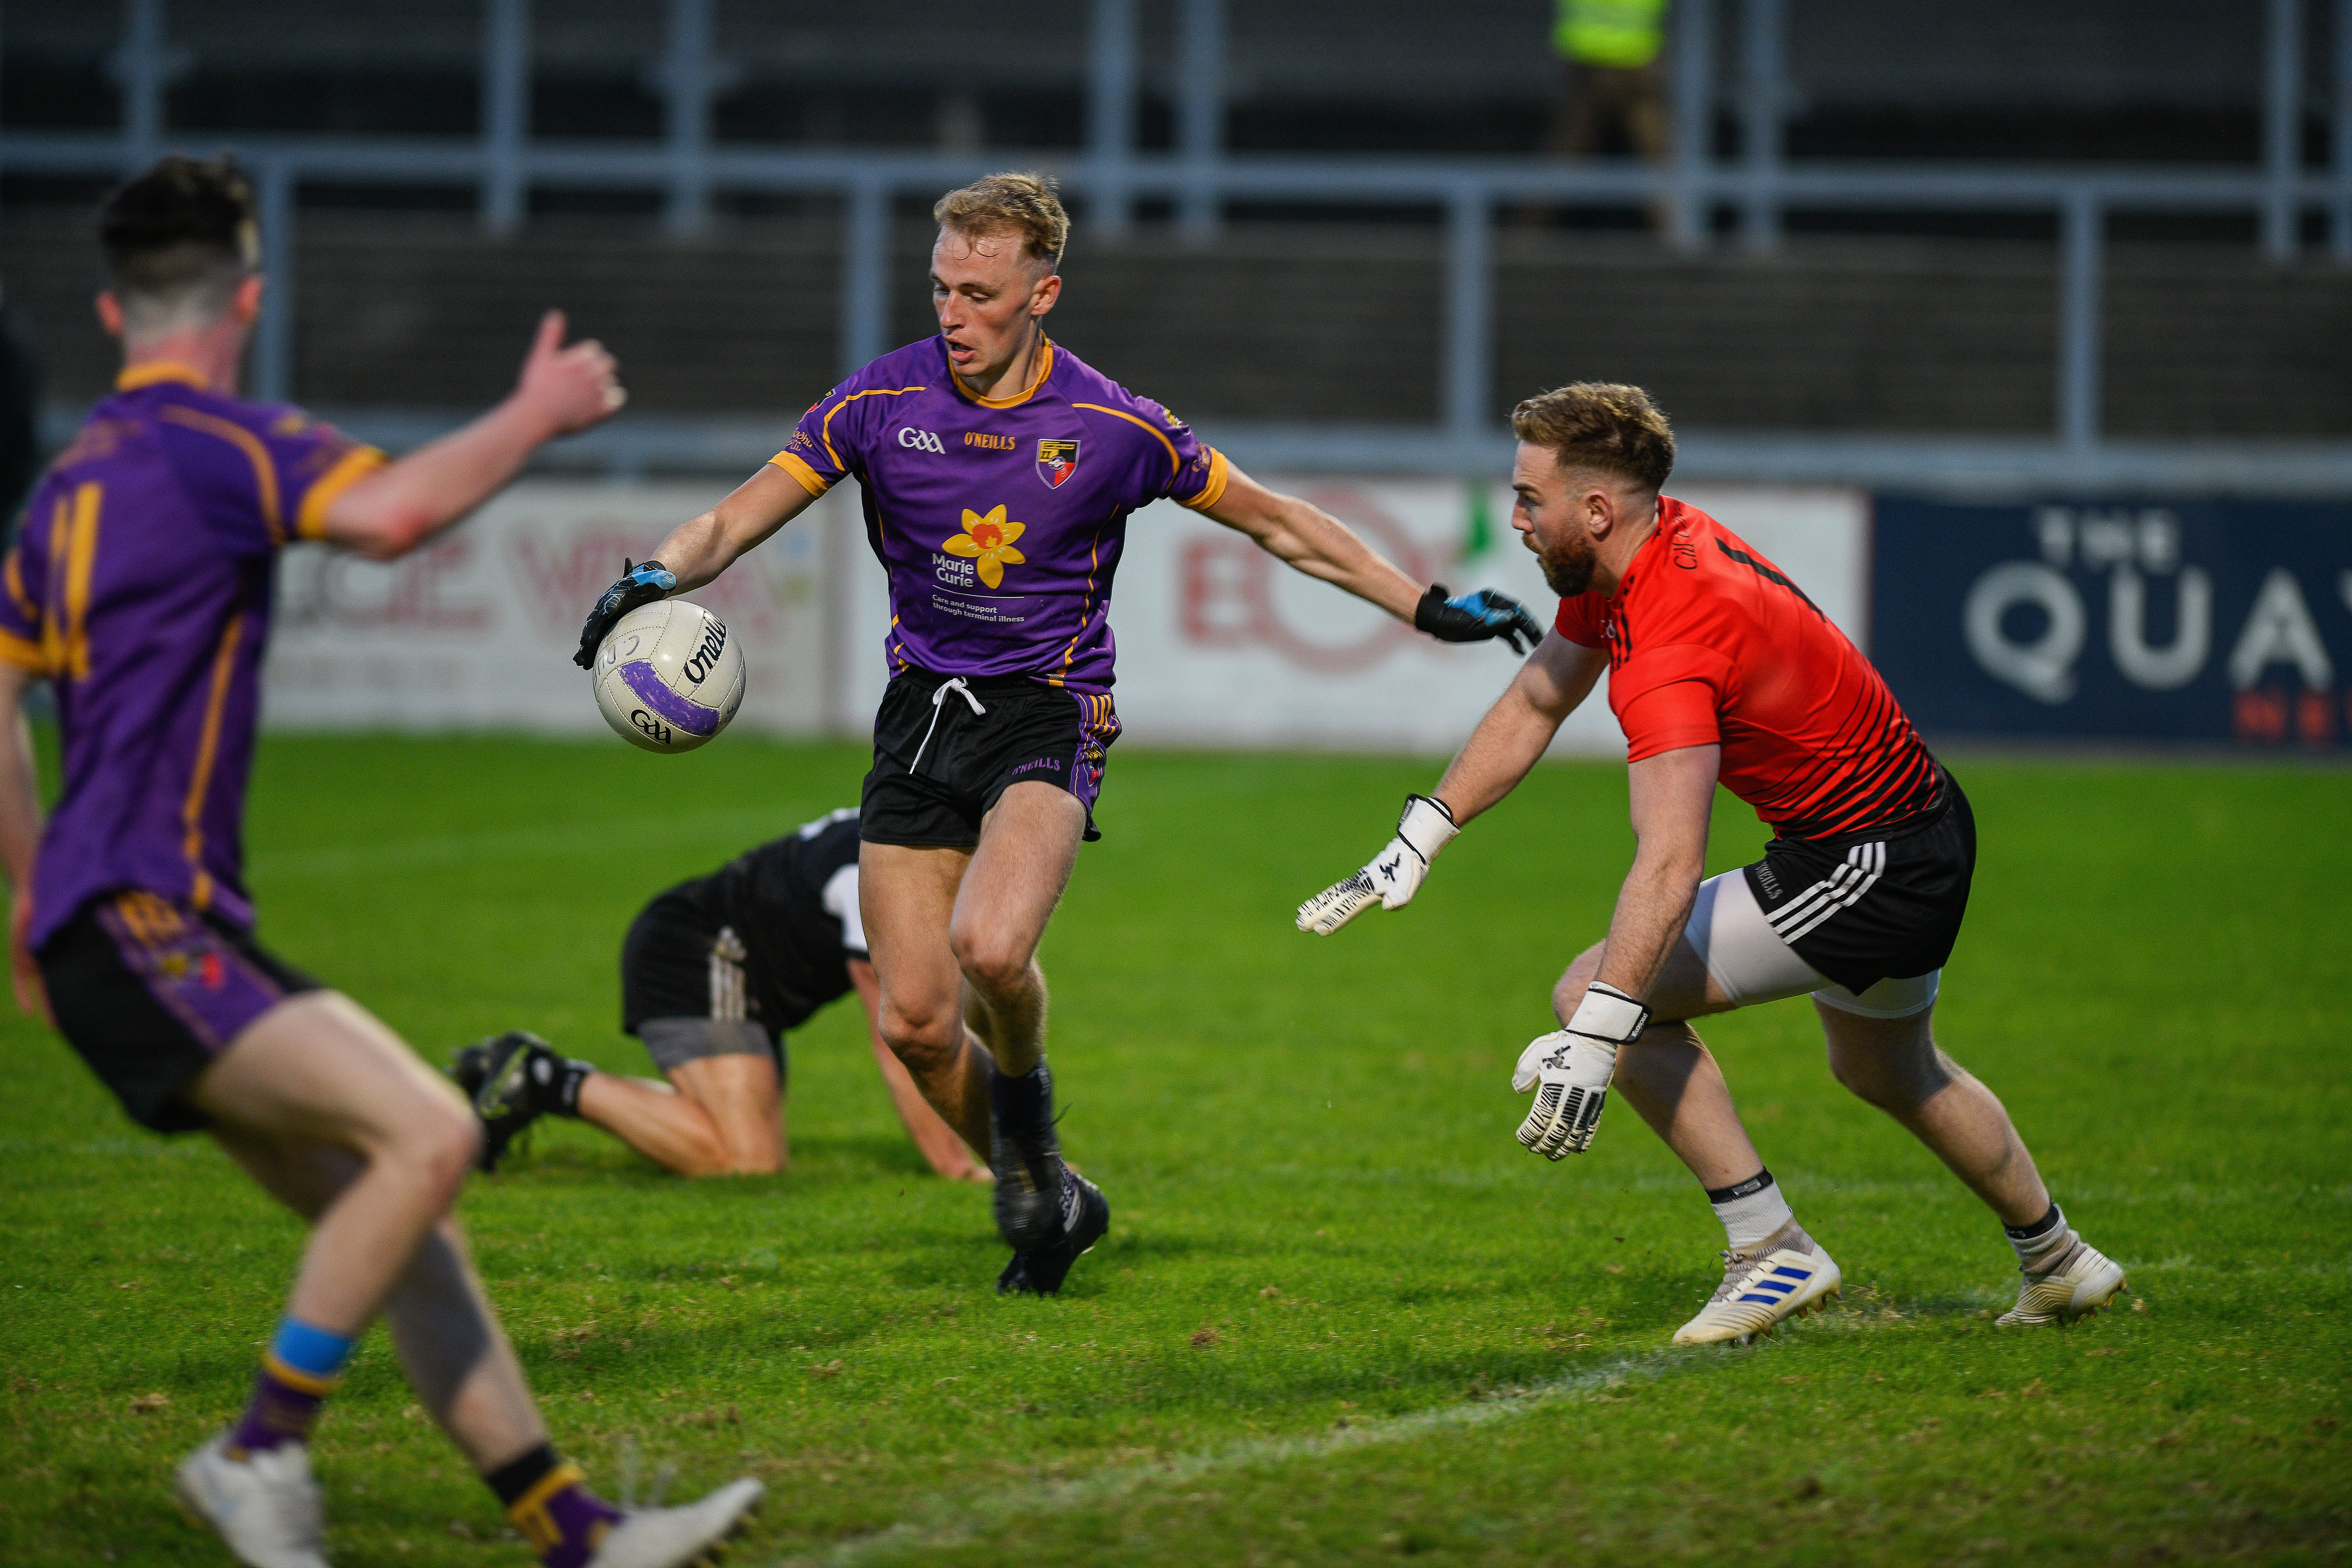 Ronan Beatty rounds Kilcoo goalkeeper Niall Kane late in the first half, but the Carryduff attacker couldn\'t keep his shot down and had to settle for a point